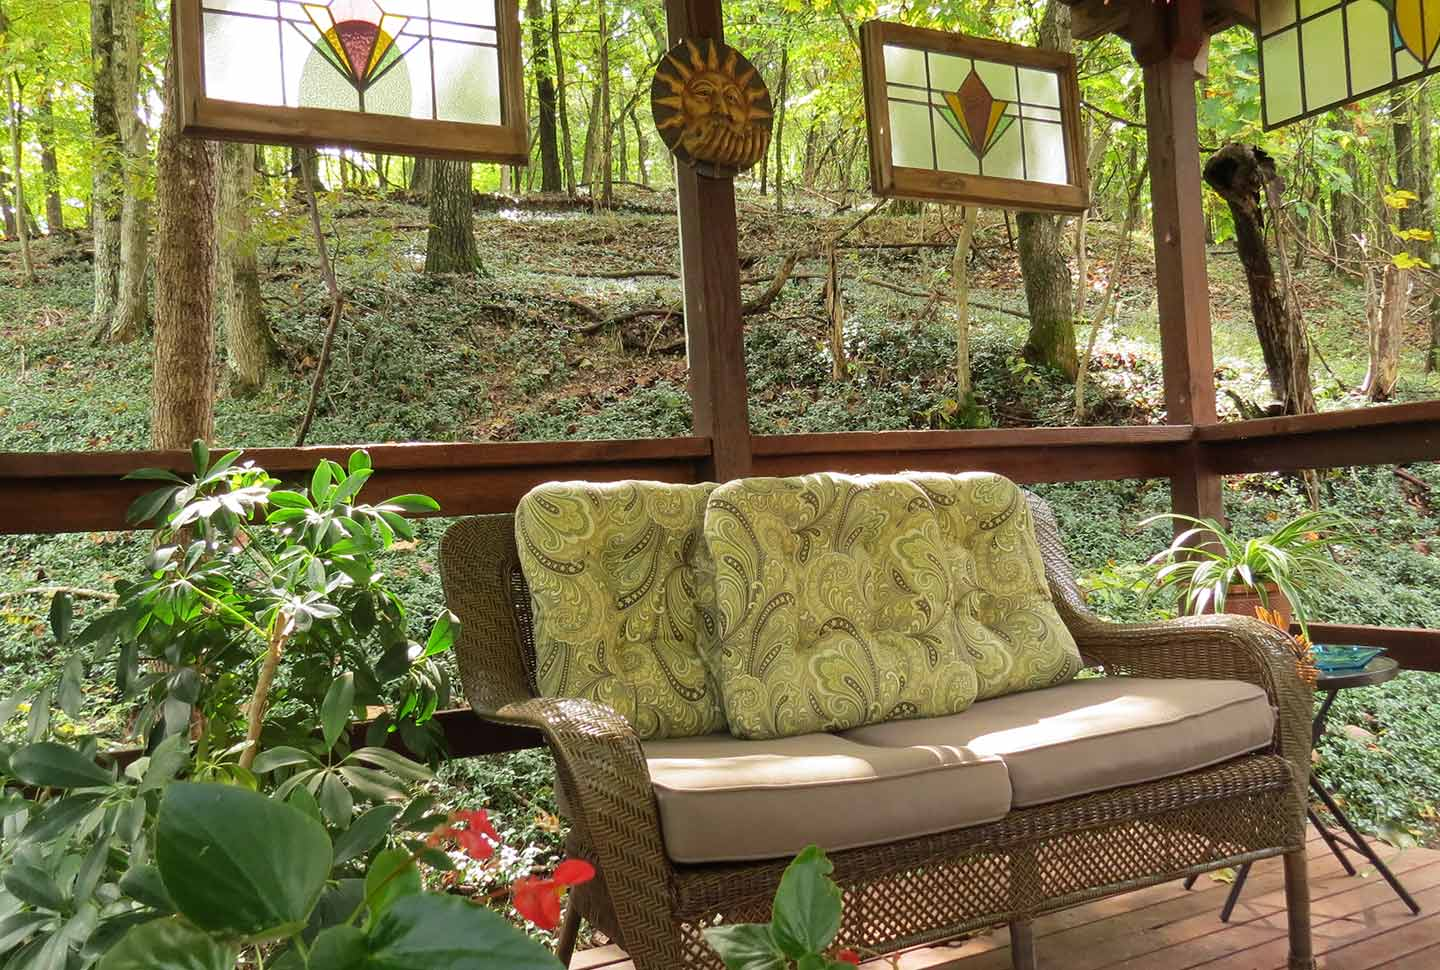 benton-place-inn-gazebo-seating